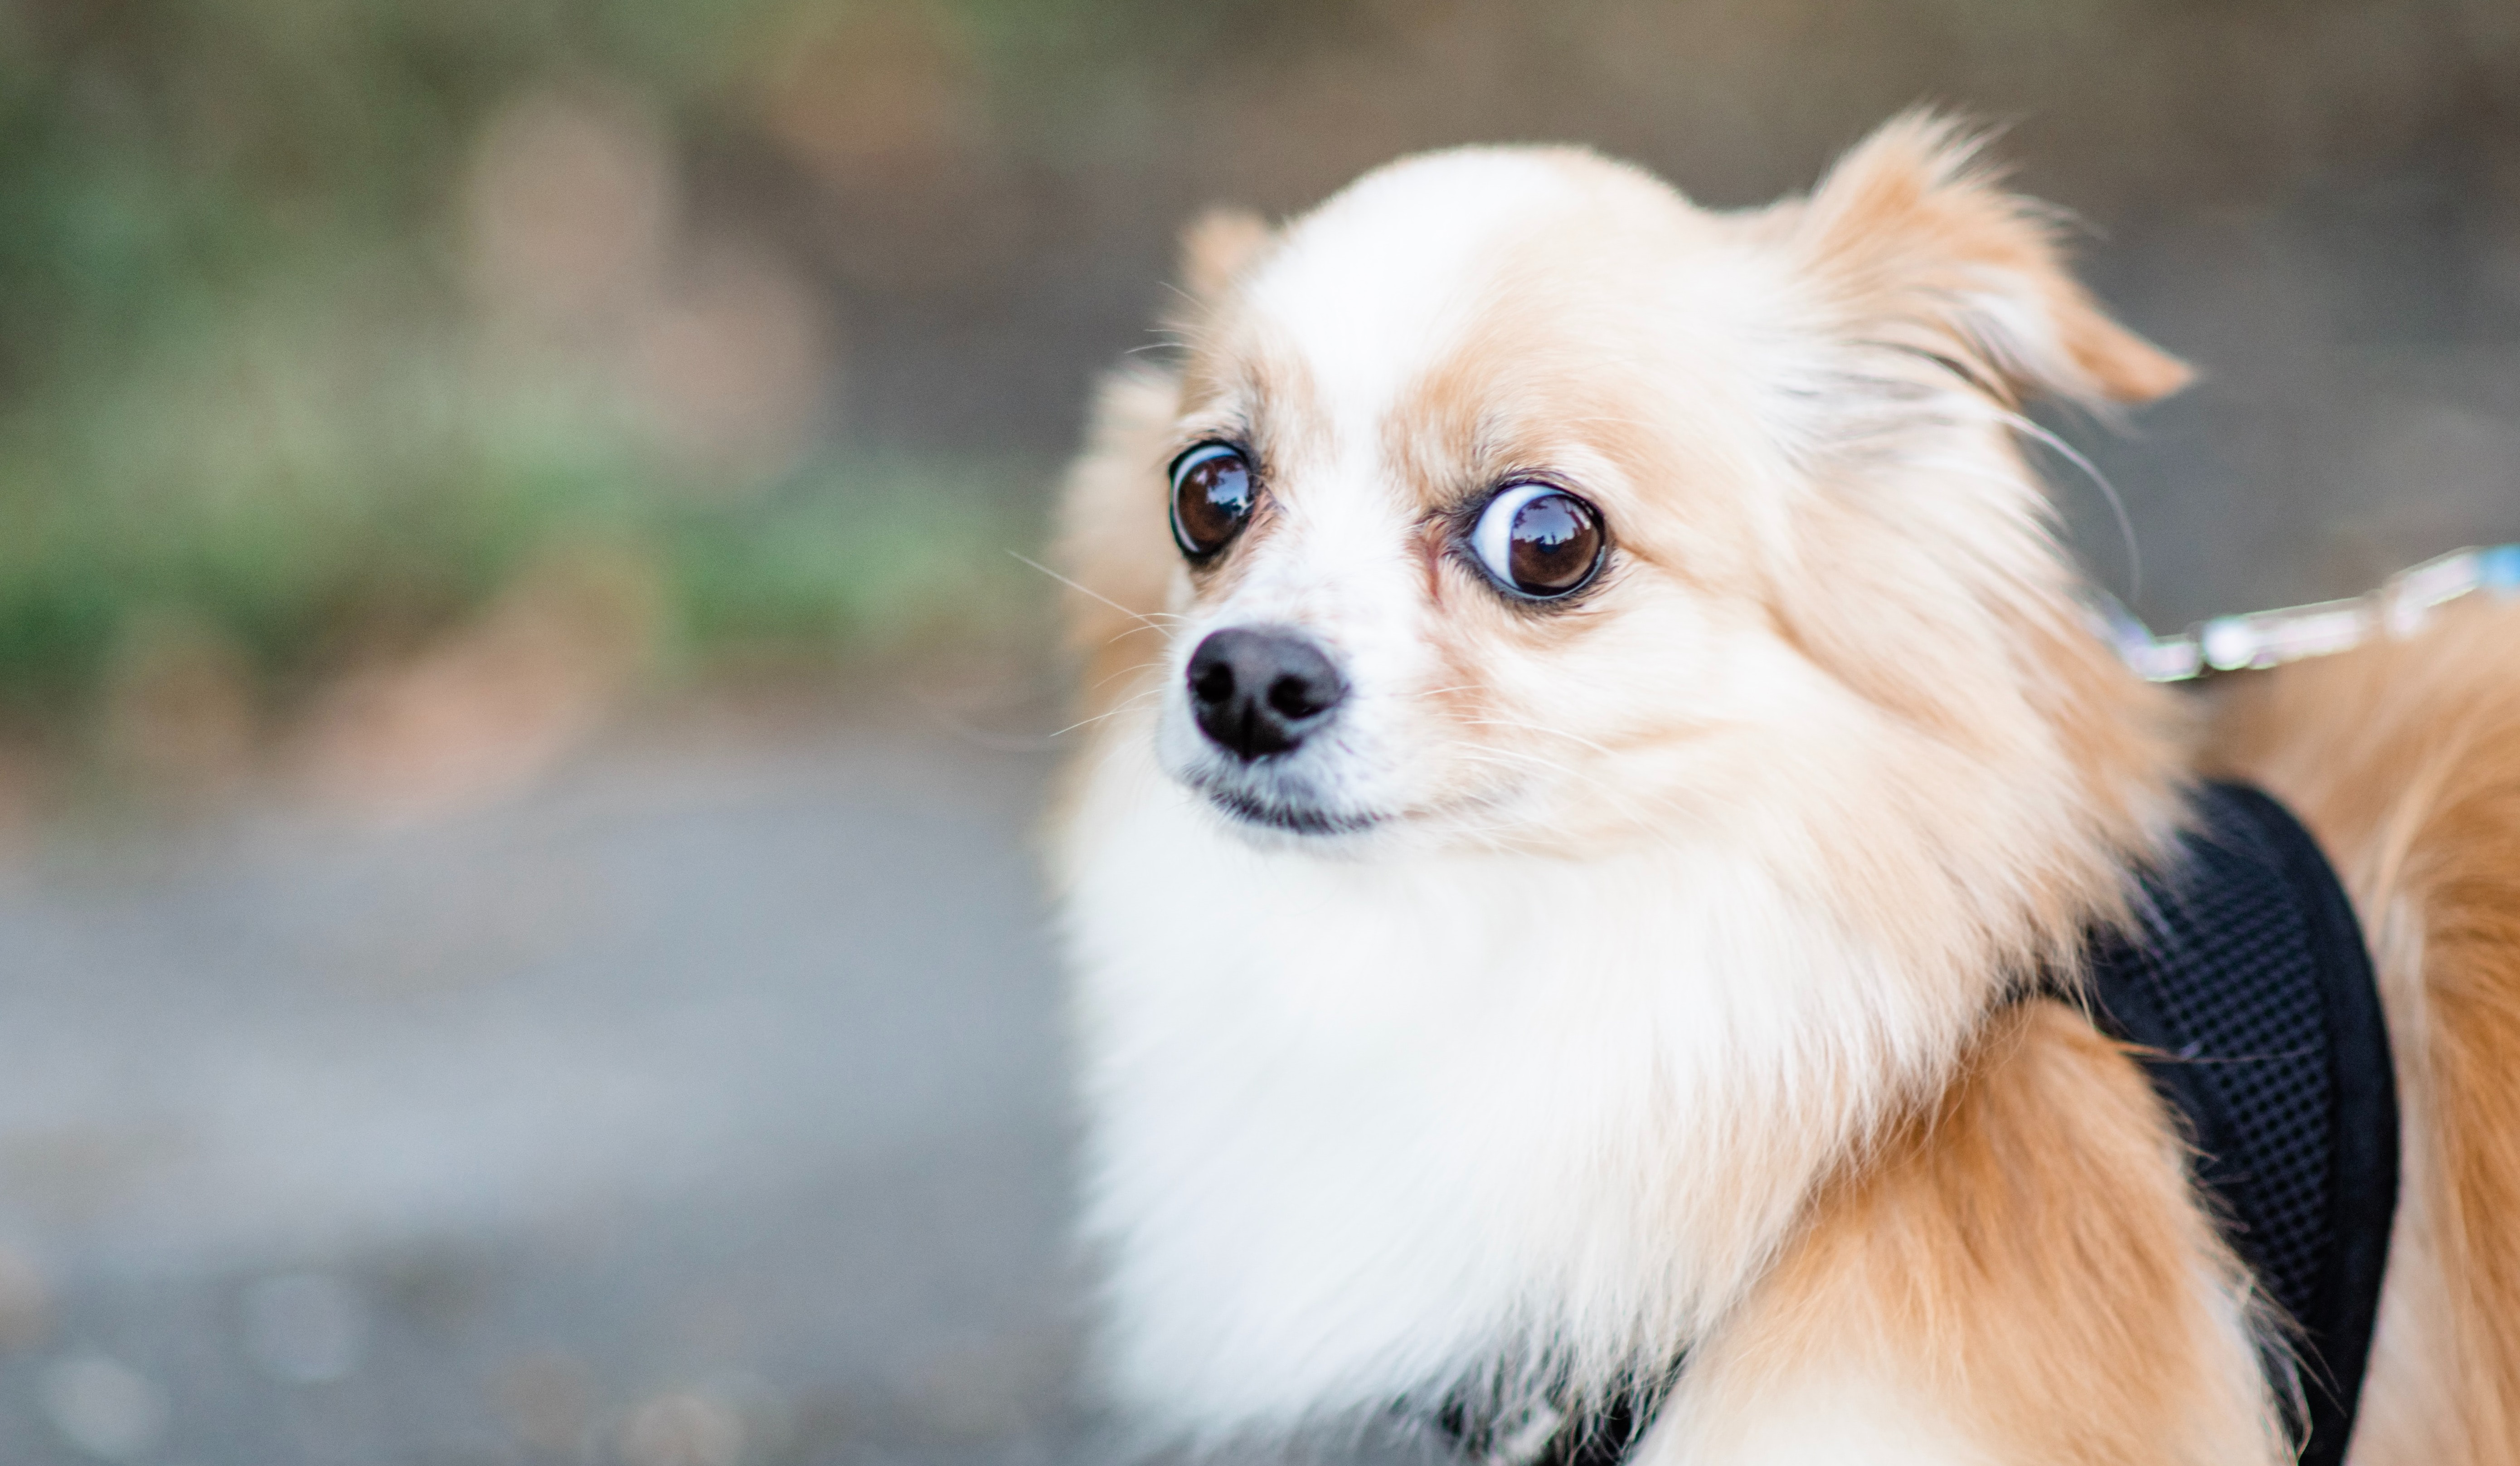 Apprehensive long-haired chihuahua